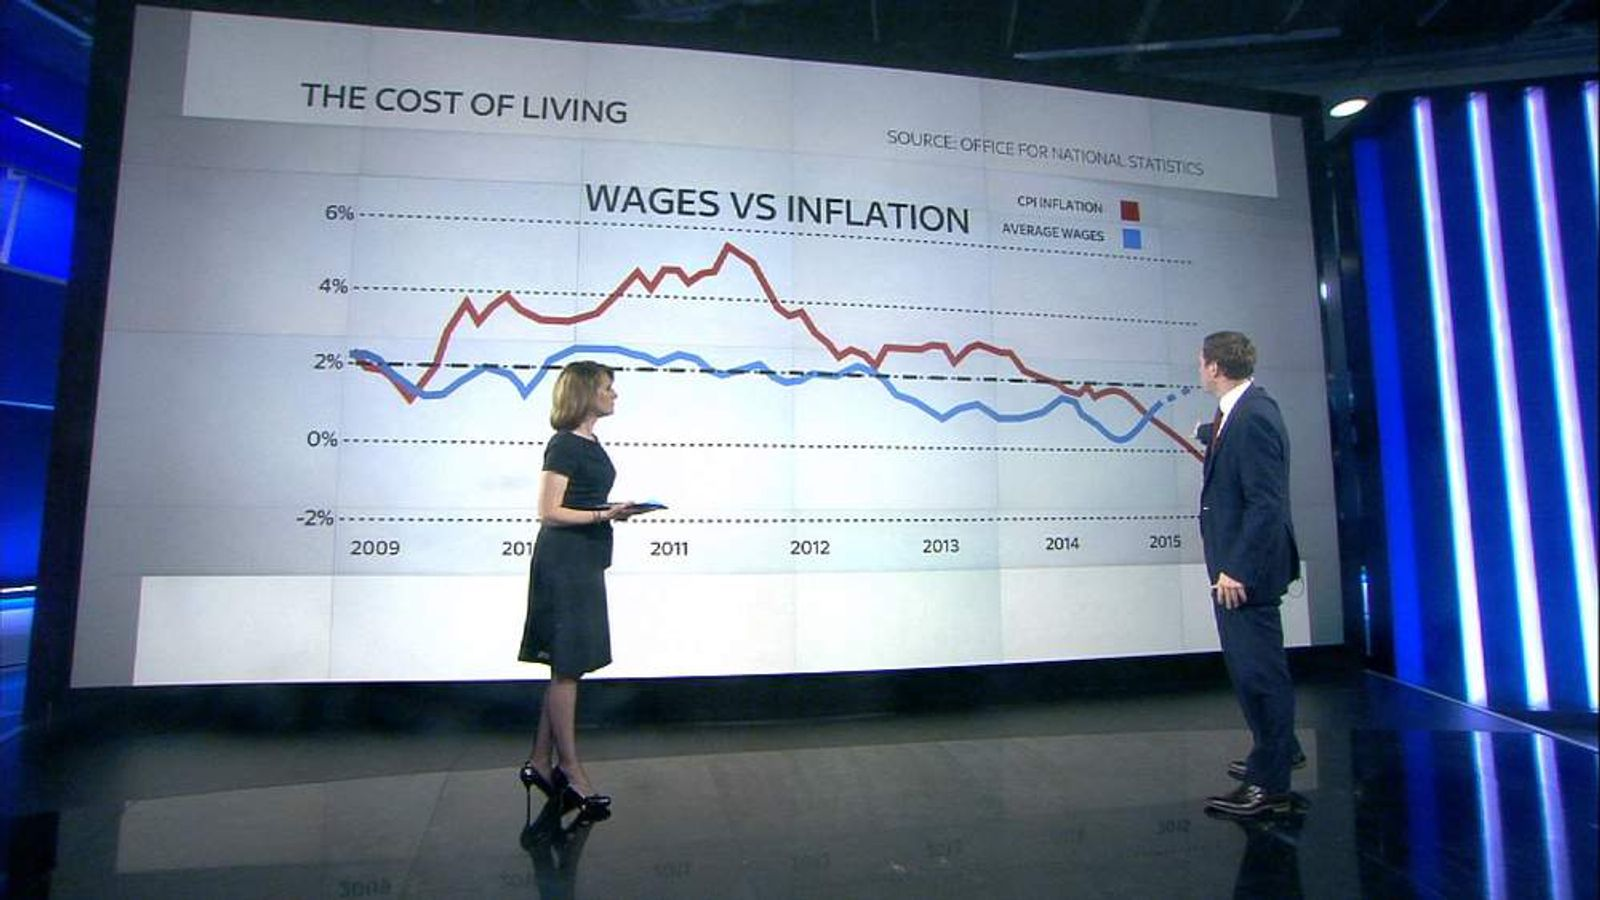 Inflation wall